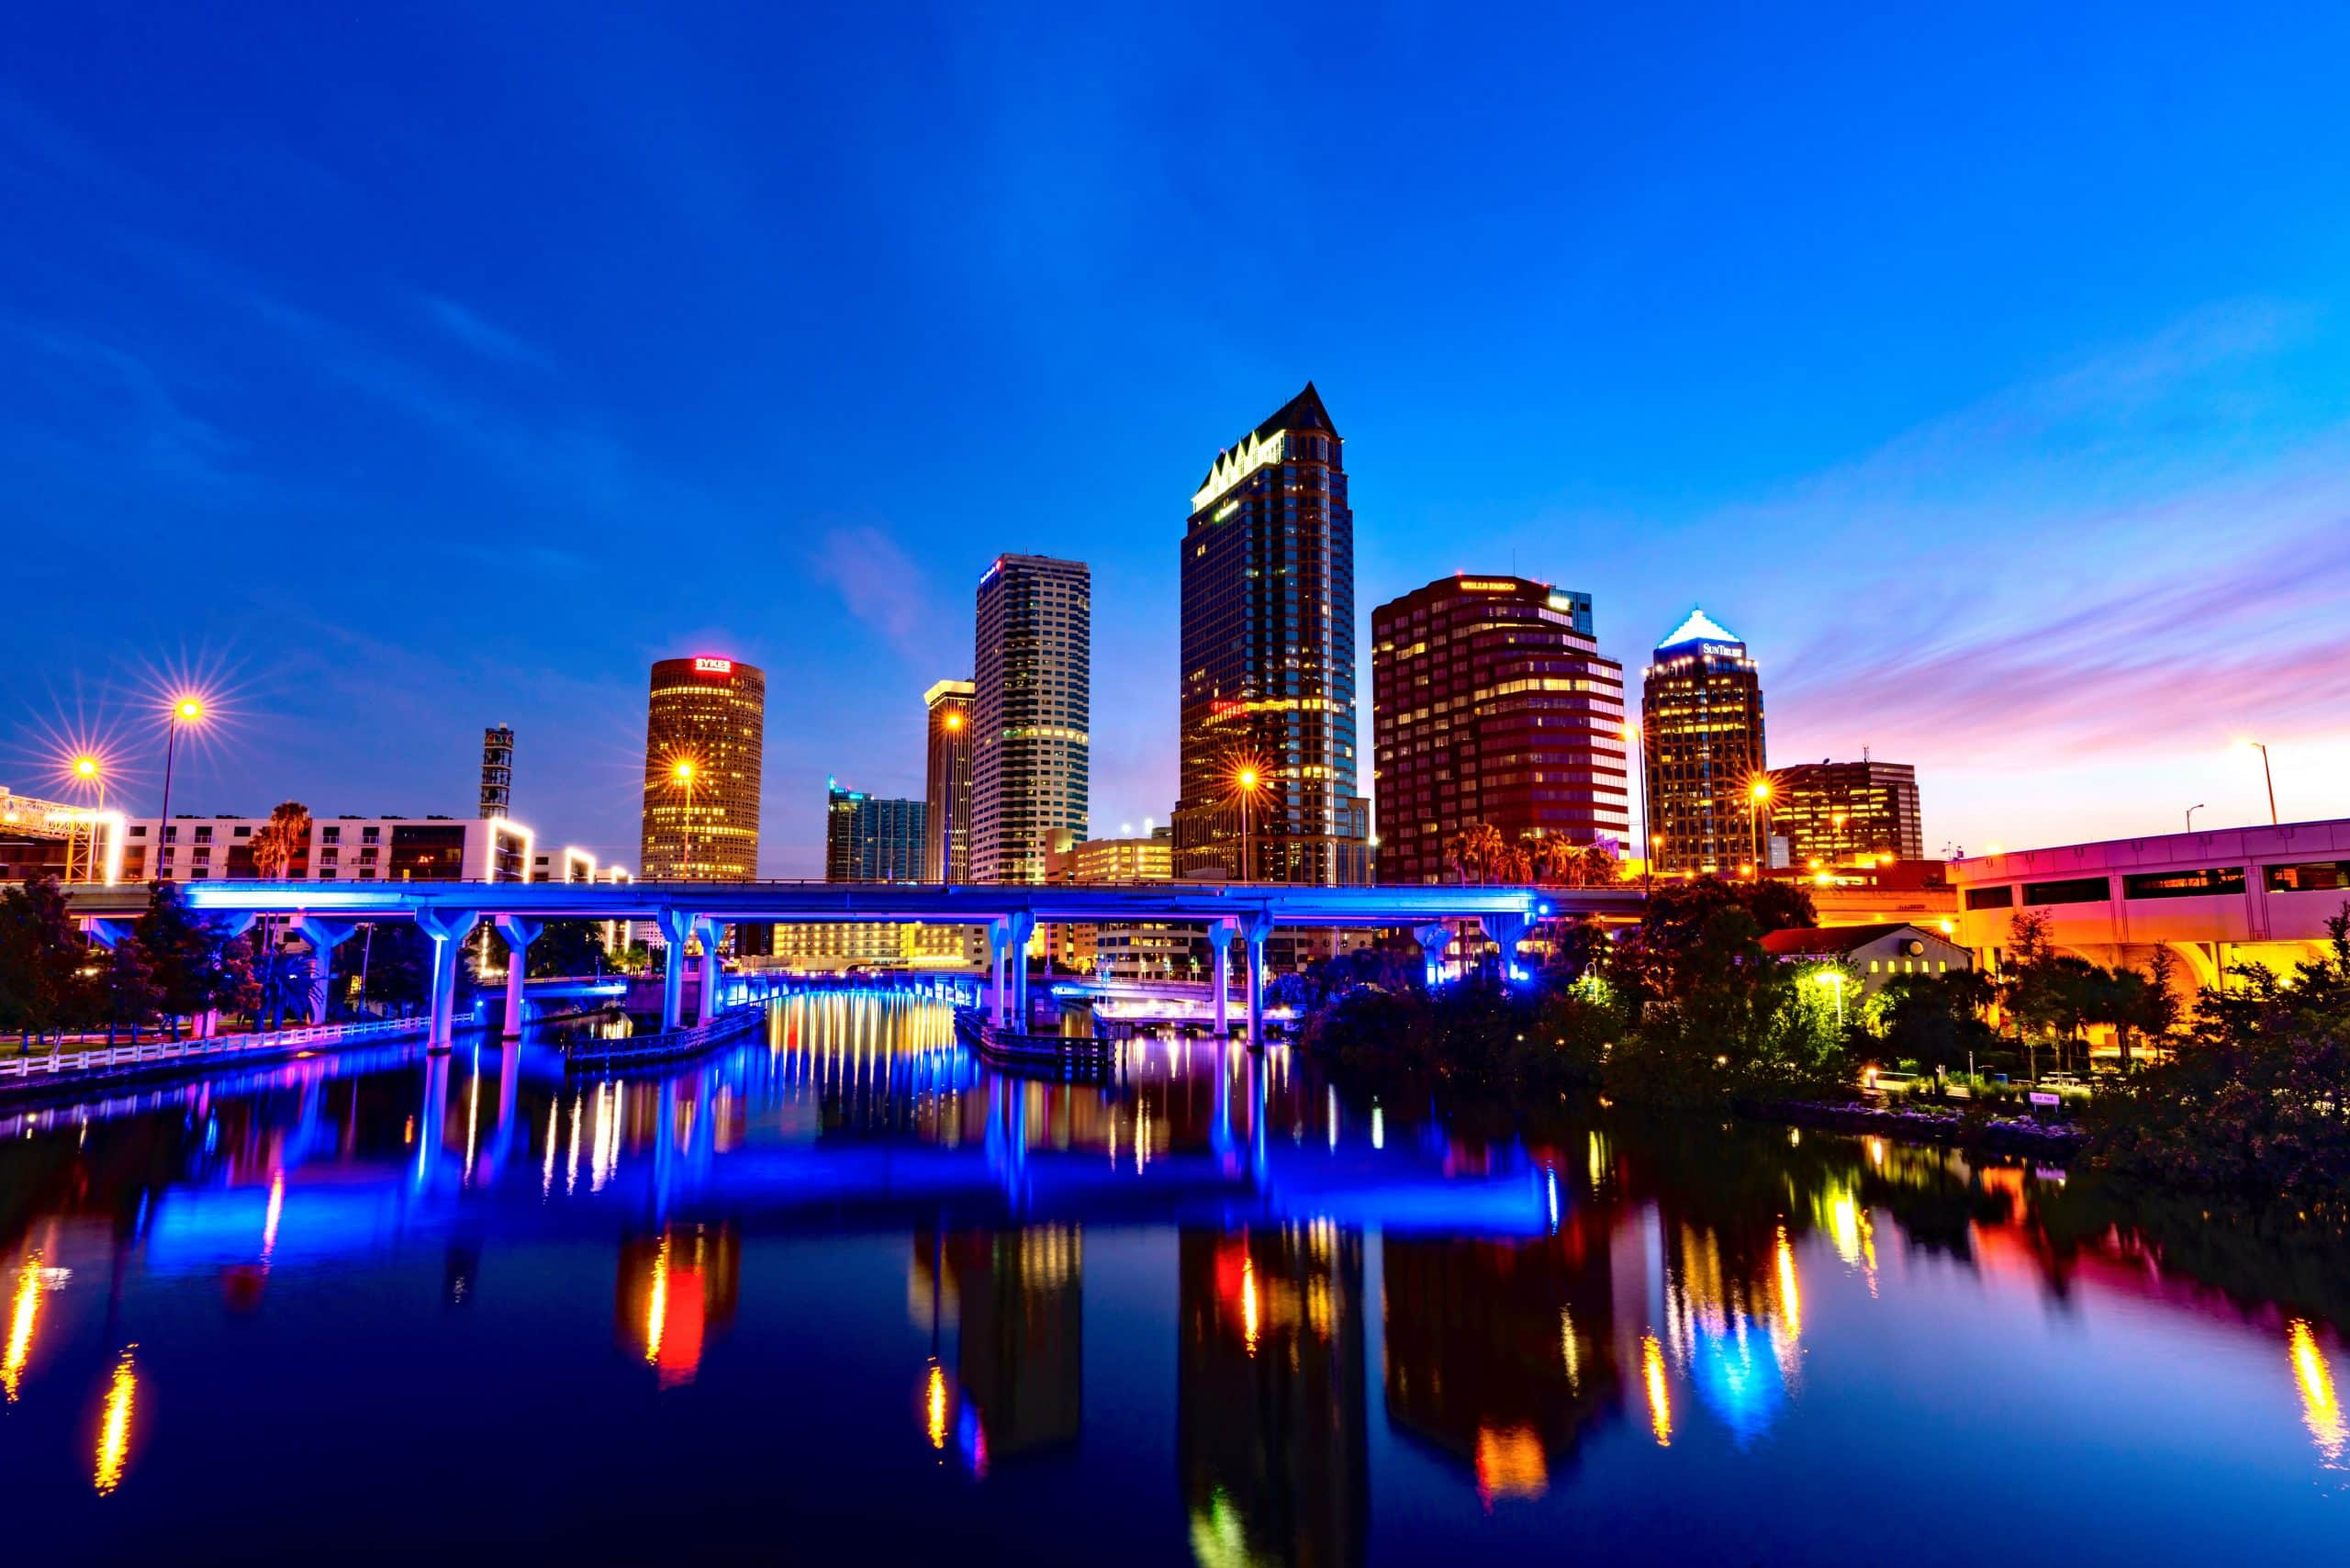 CTP's HQ Rated Top 10 Best City & Florida a Top U.S. State